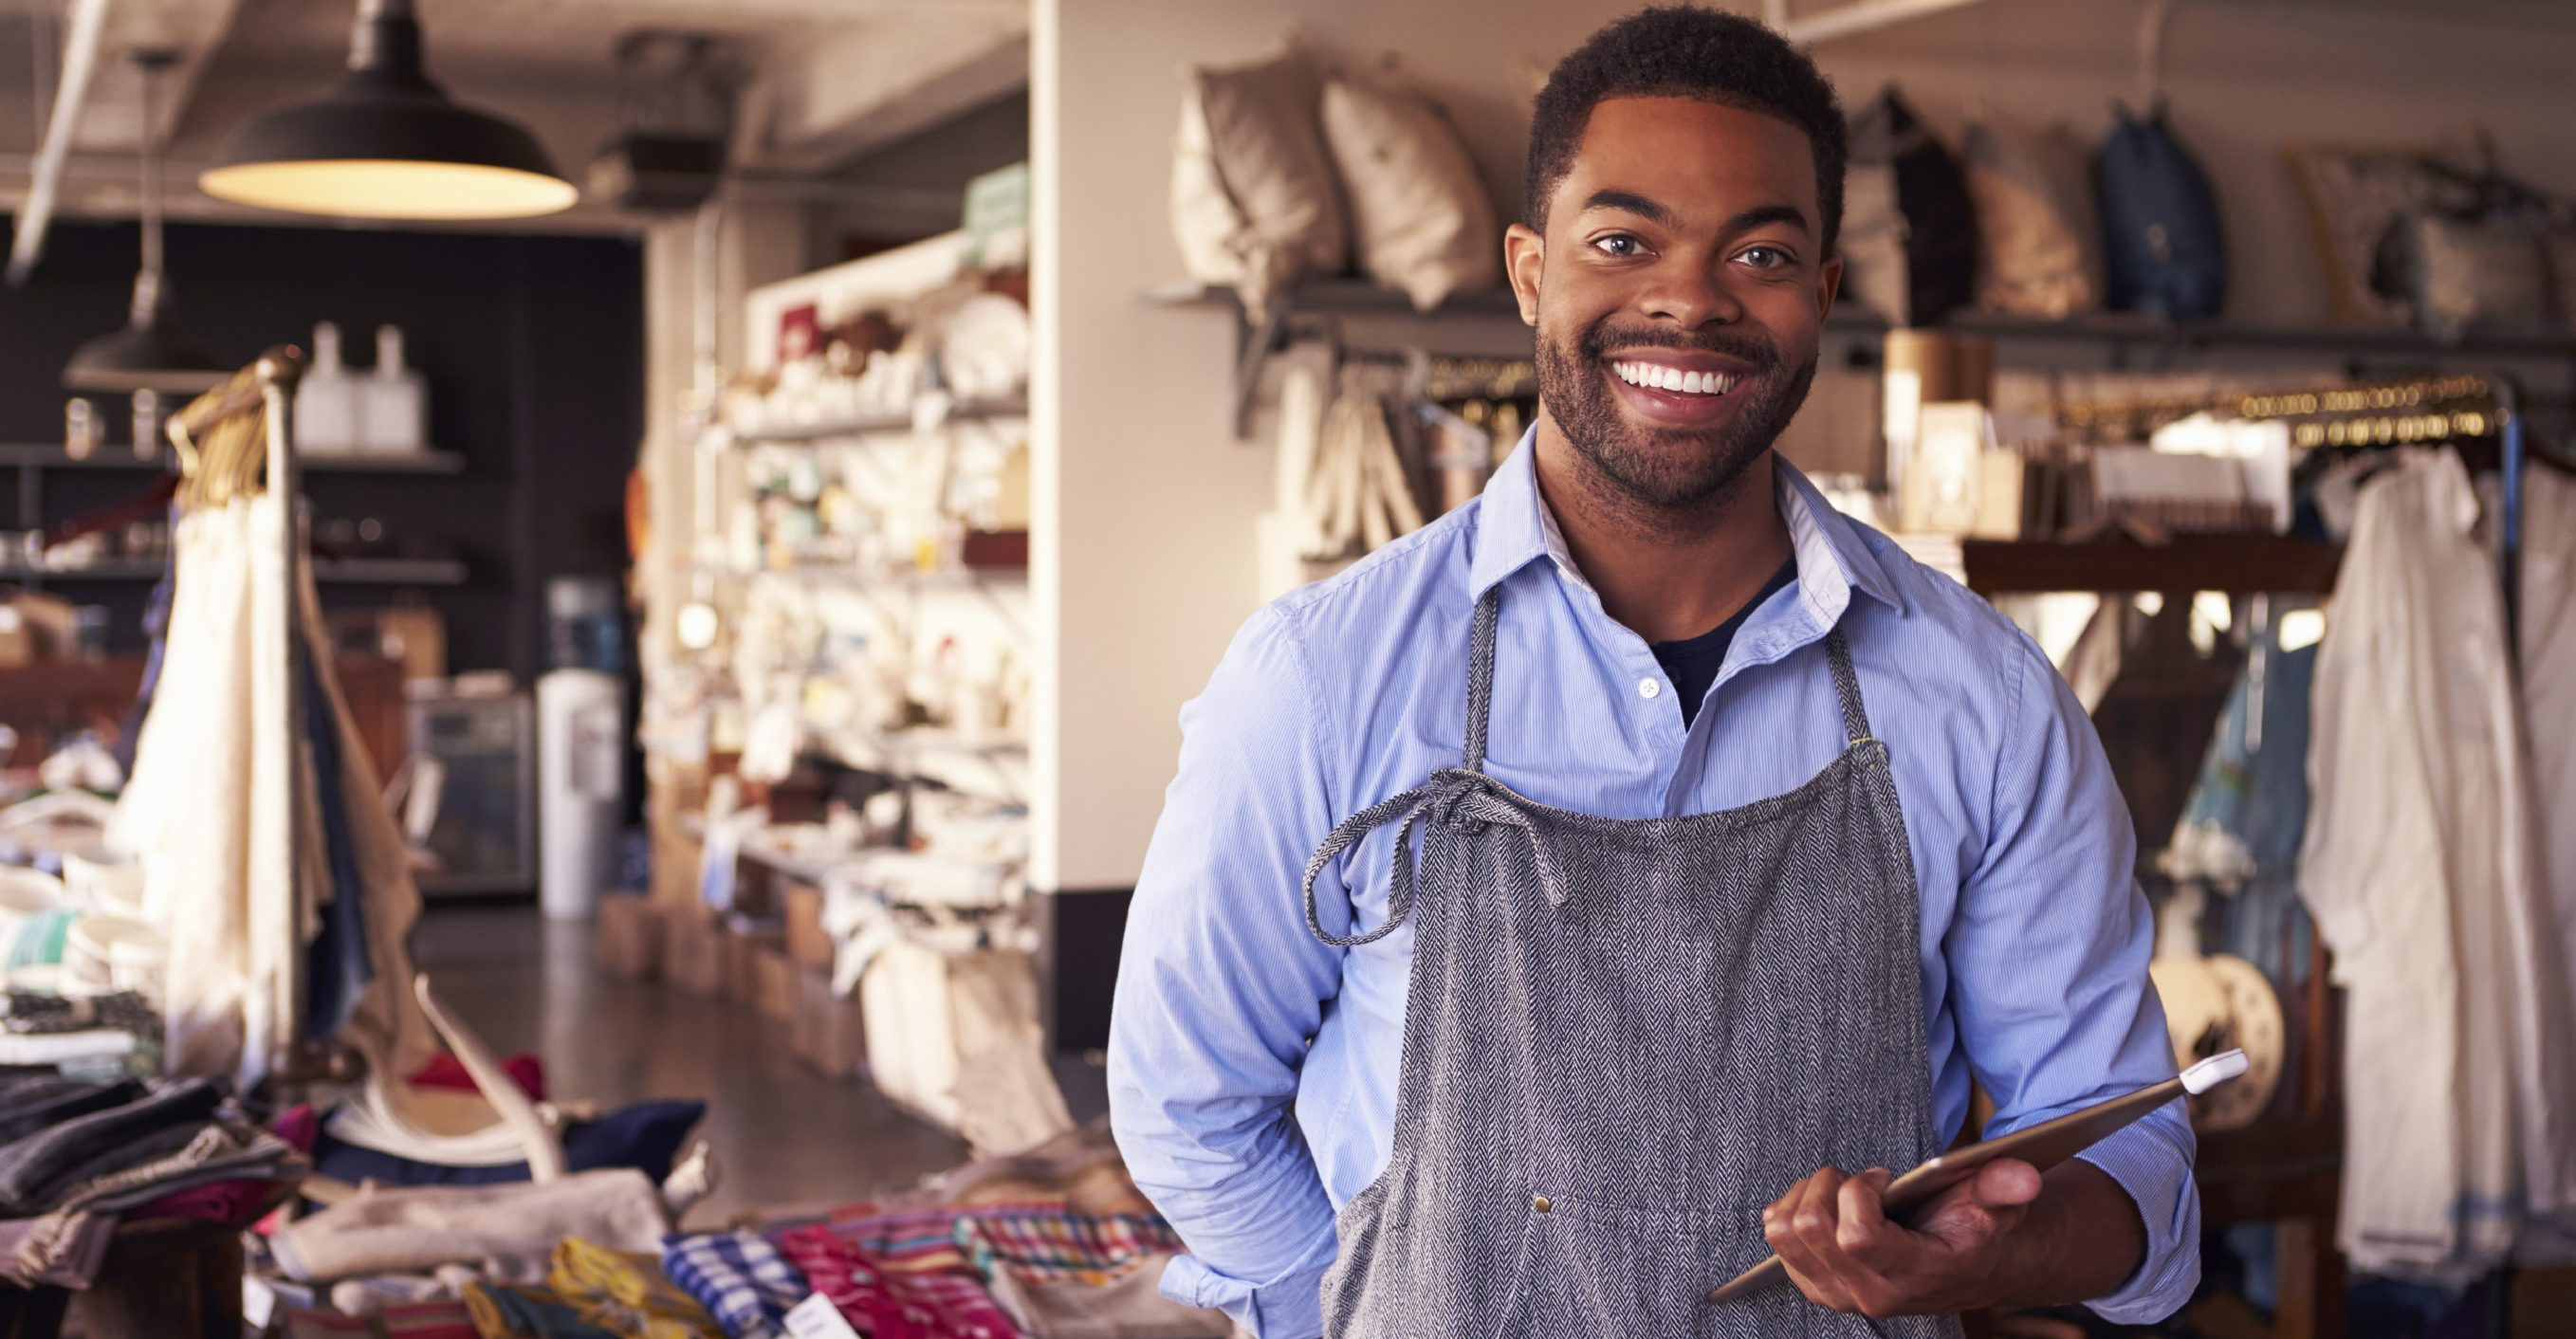 Portrait Of Male Owner Of Gift Store With Digital Tablet